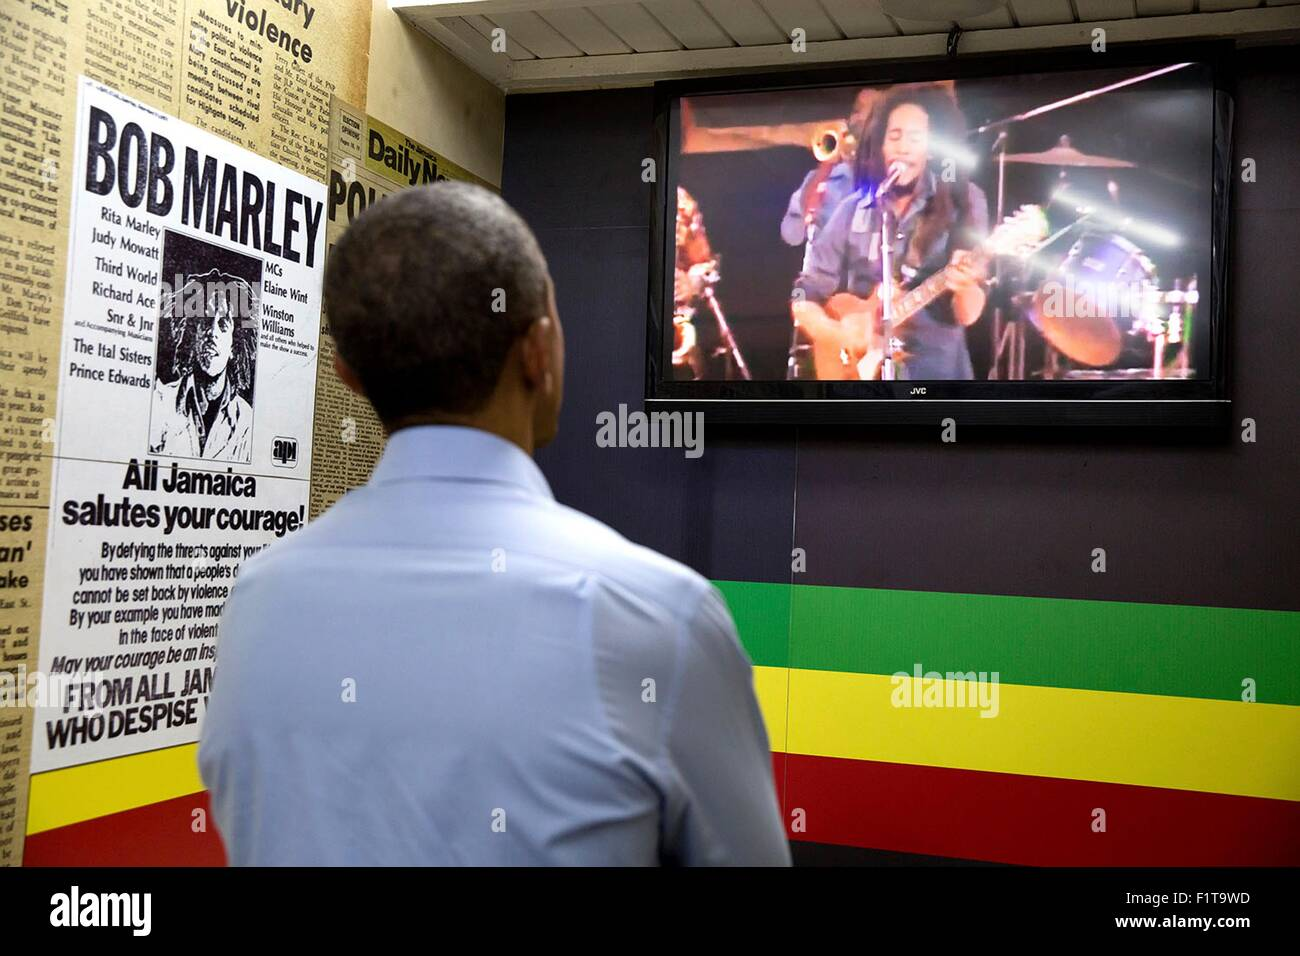 U.S. President Barack Obama watches a video during a visit to the Bob Marley Museum April 8, 2015 in Kingston, Jamaica. - Stock Image